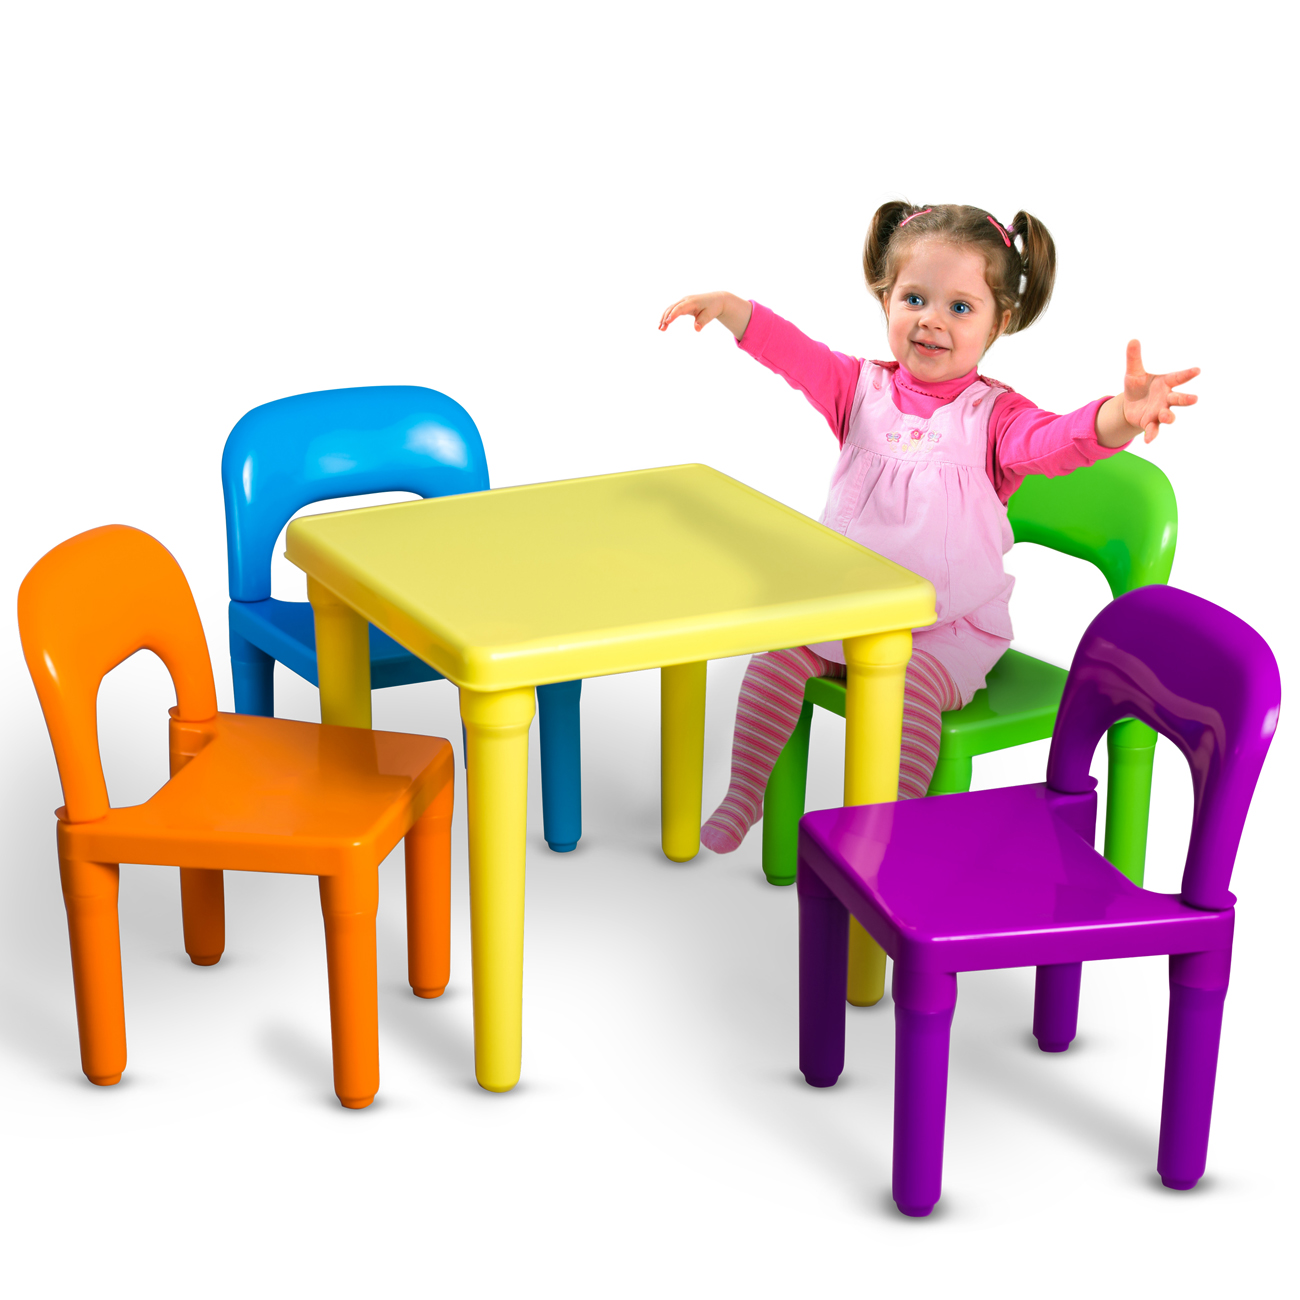 Attractive oxgord kids table and chairs play set for toddler child toy activity jbhmftd